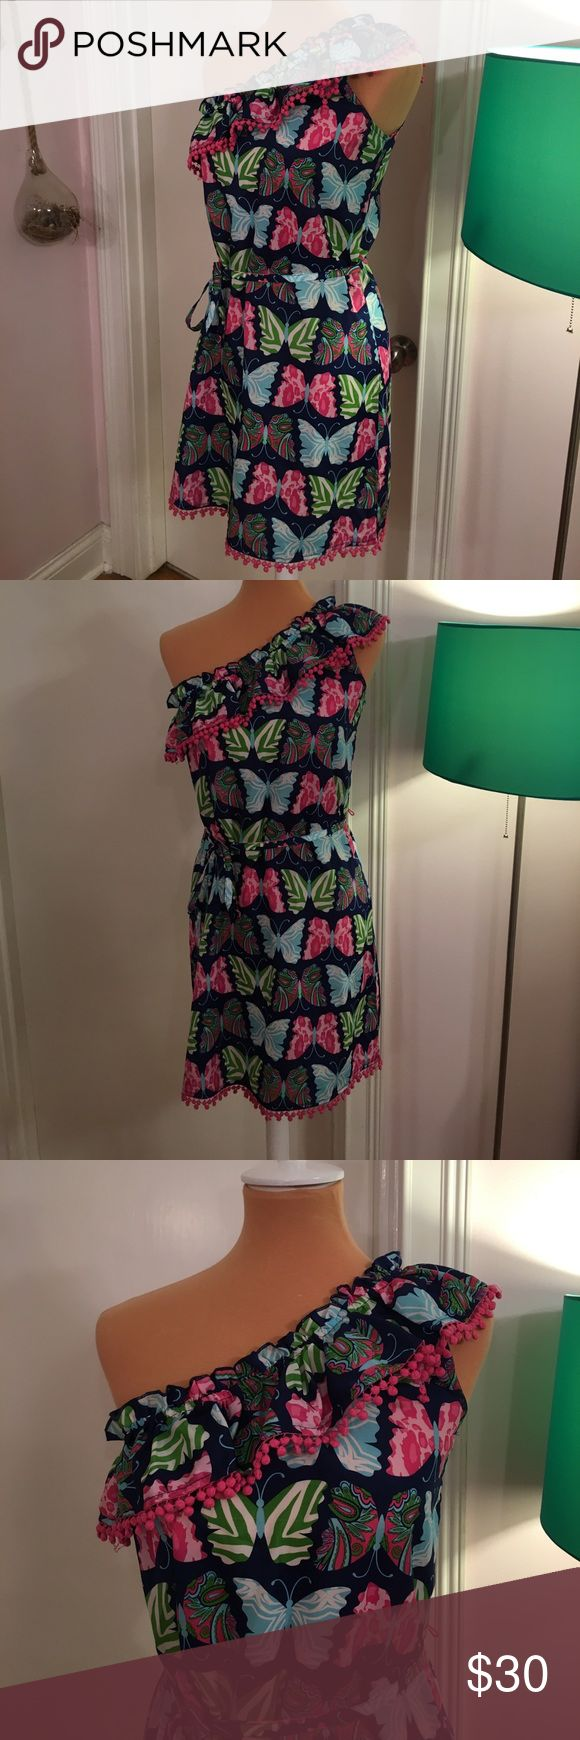 Mud Pie Butterfly One Shoulder Dress In great pre-owned condition. No rips, stains, or pilling. No trades or try ons. Smoke free, dog friendly home. Reasonable offers only. Please specify measurements if you would like them. Shipping prices are firm. Mud Pie Dresses Mini